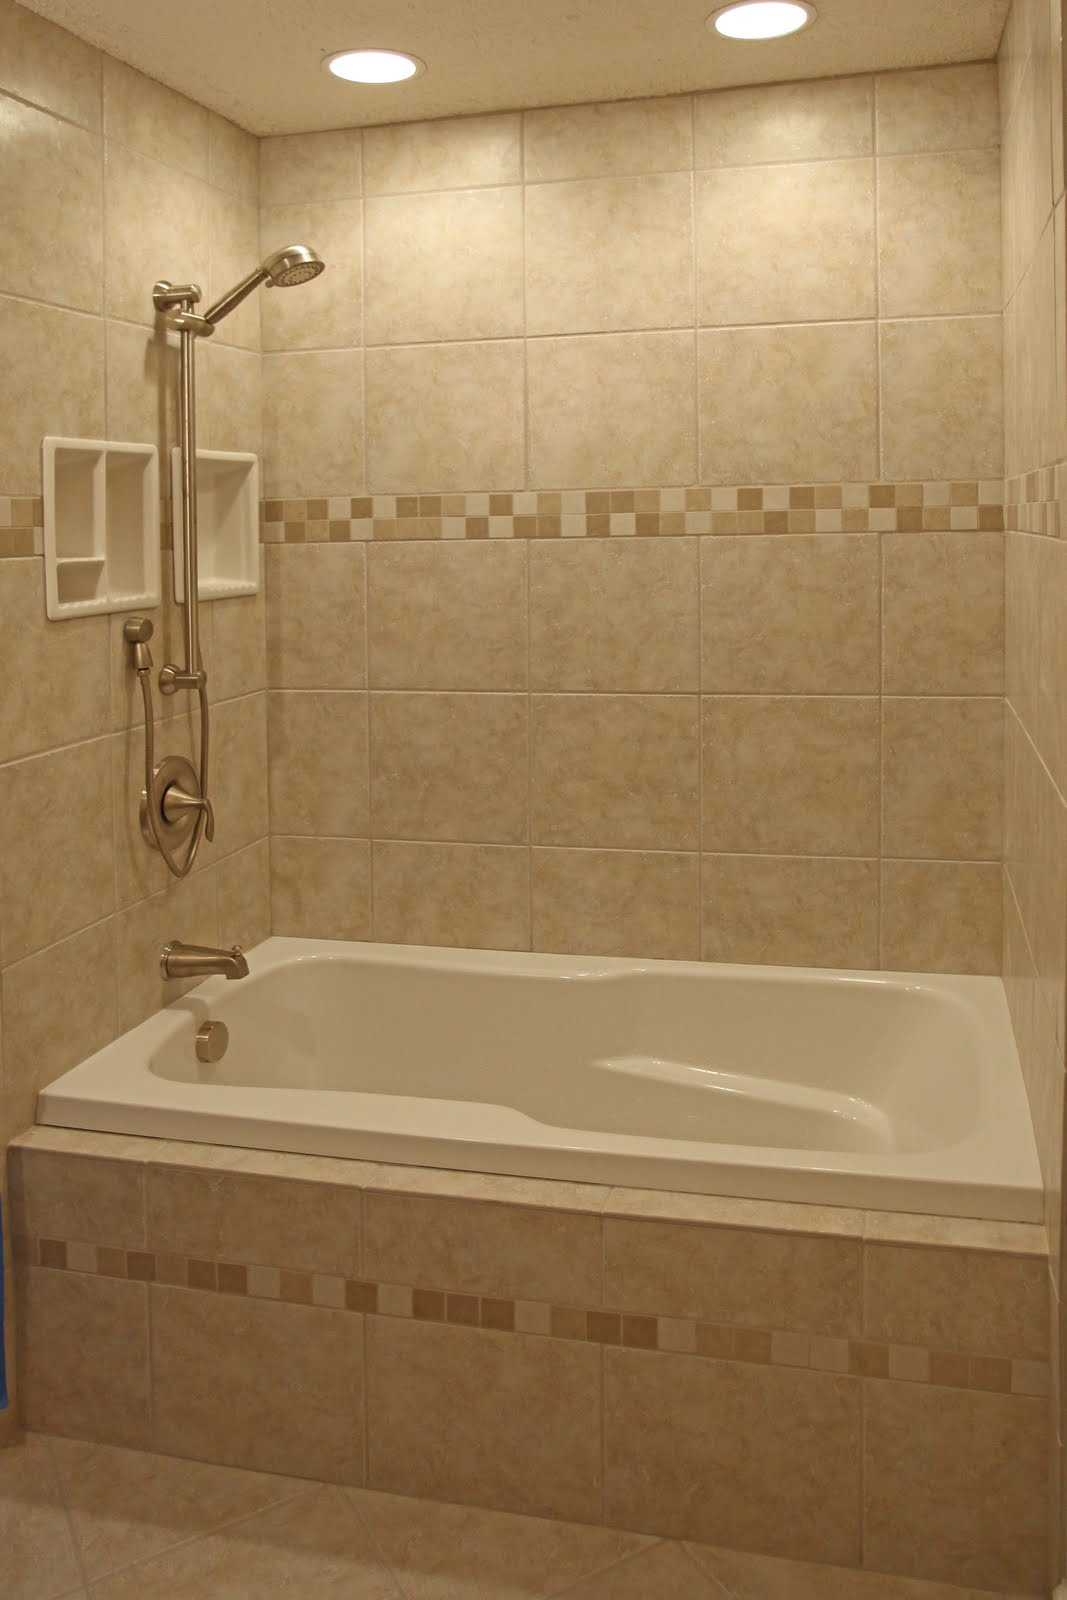 Bathroom remodeling design ideas tile shower niches for Bathroom designs tiles